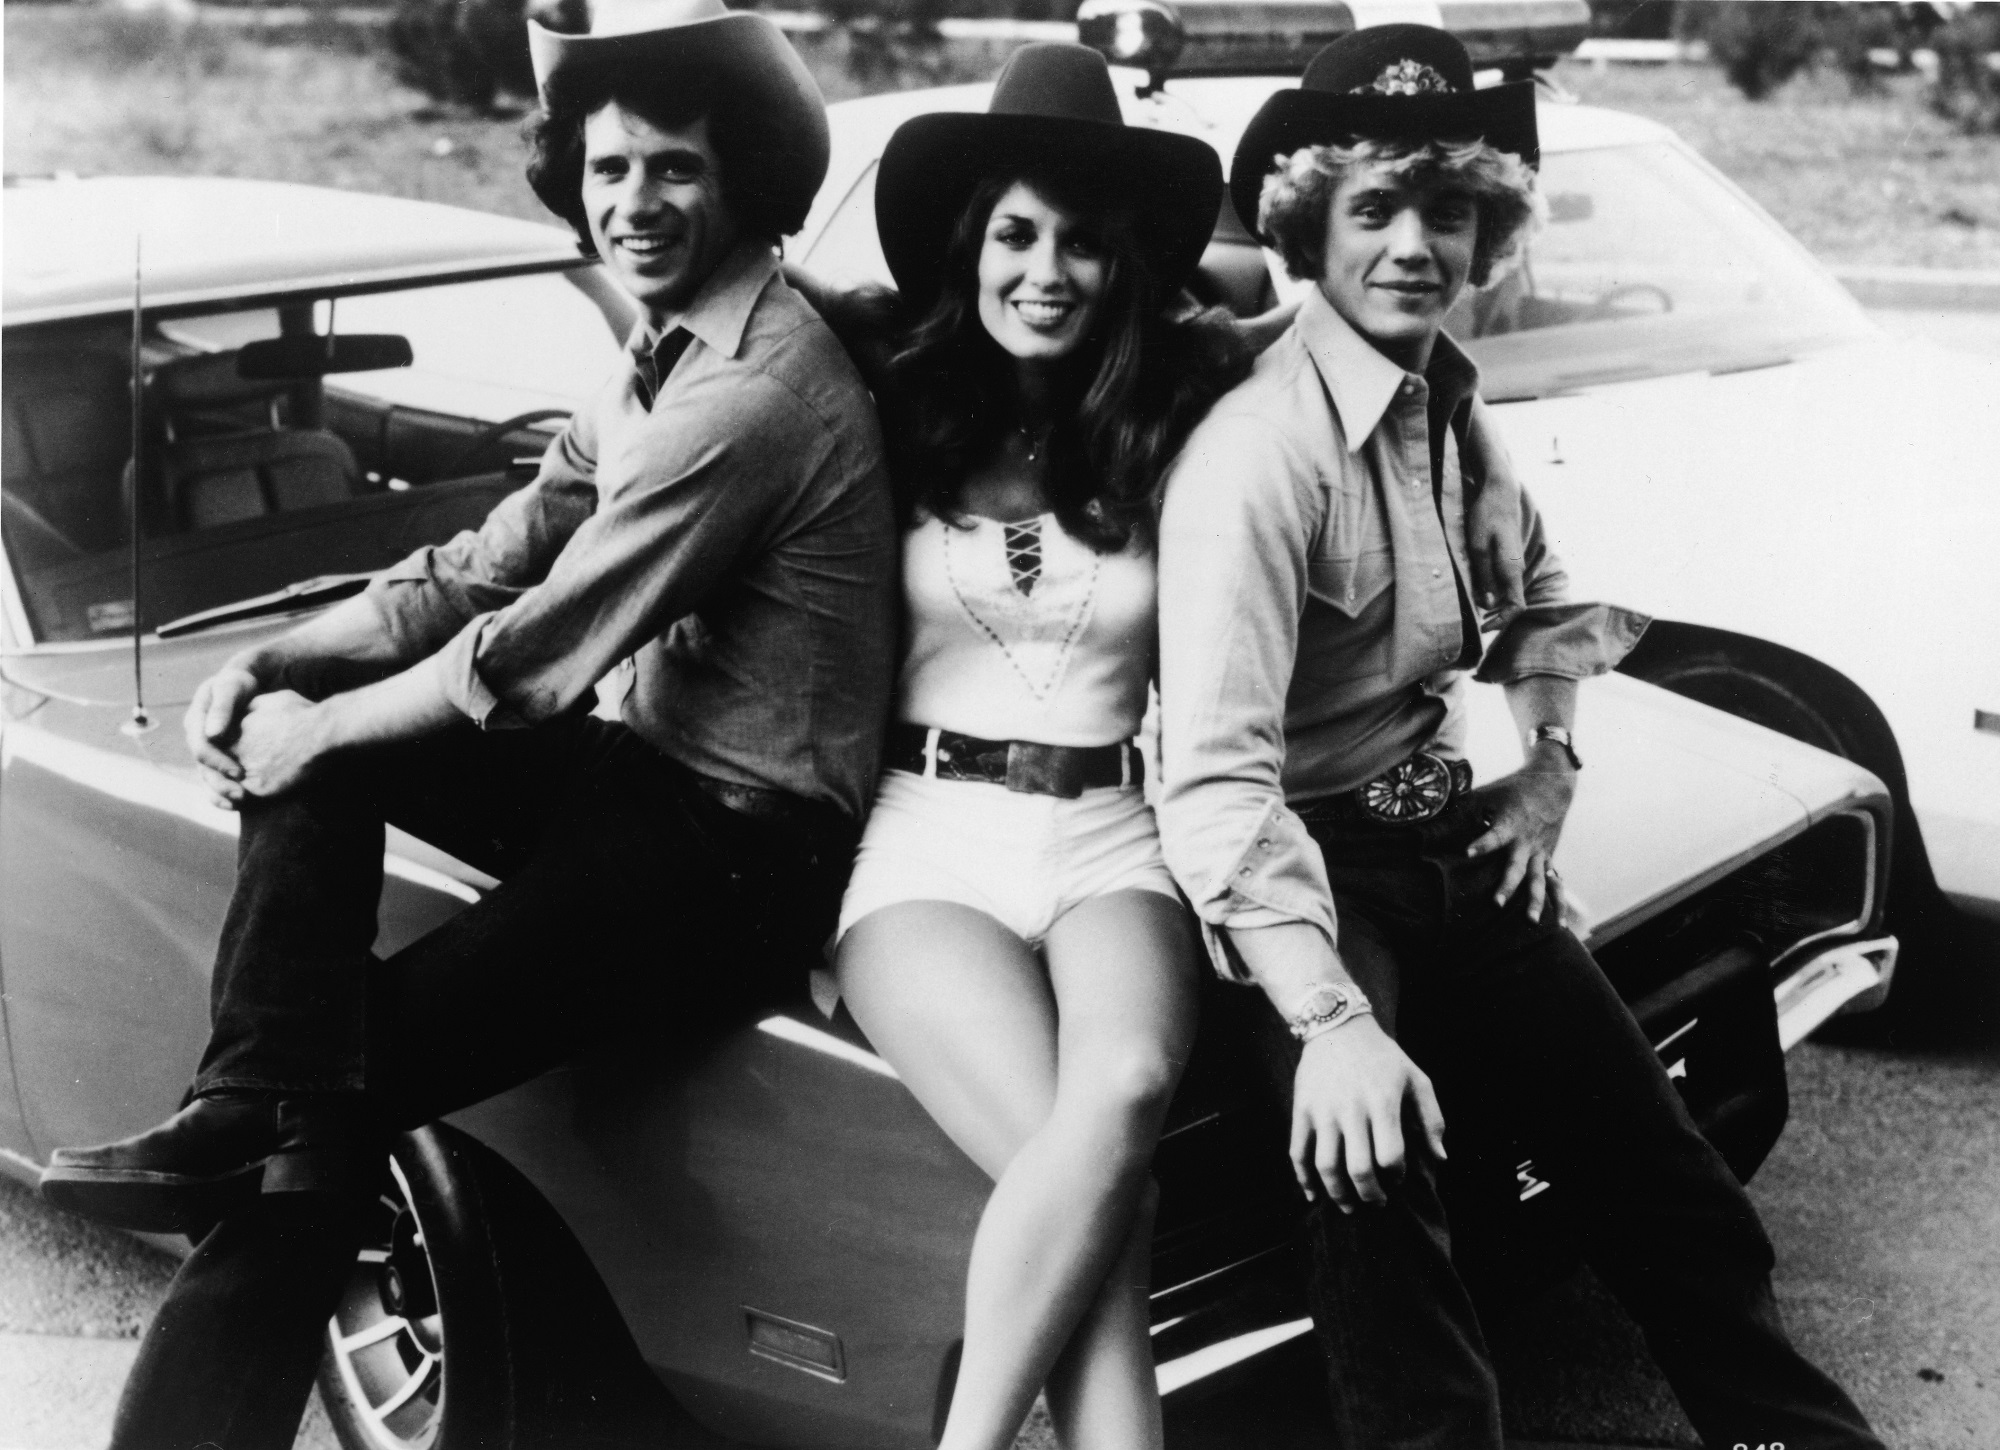 Tom Wopat, Catherine Bach, and John Schneider sitting on the hood of the car, the General Lee for the television show, The Dukes of Hazzard